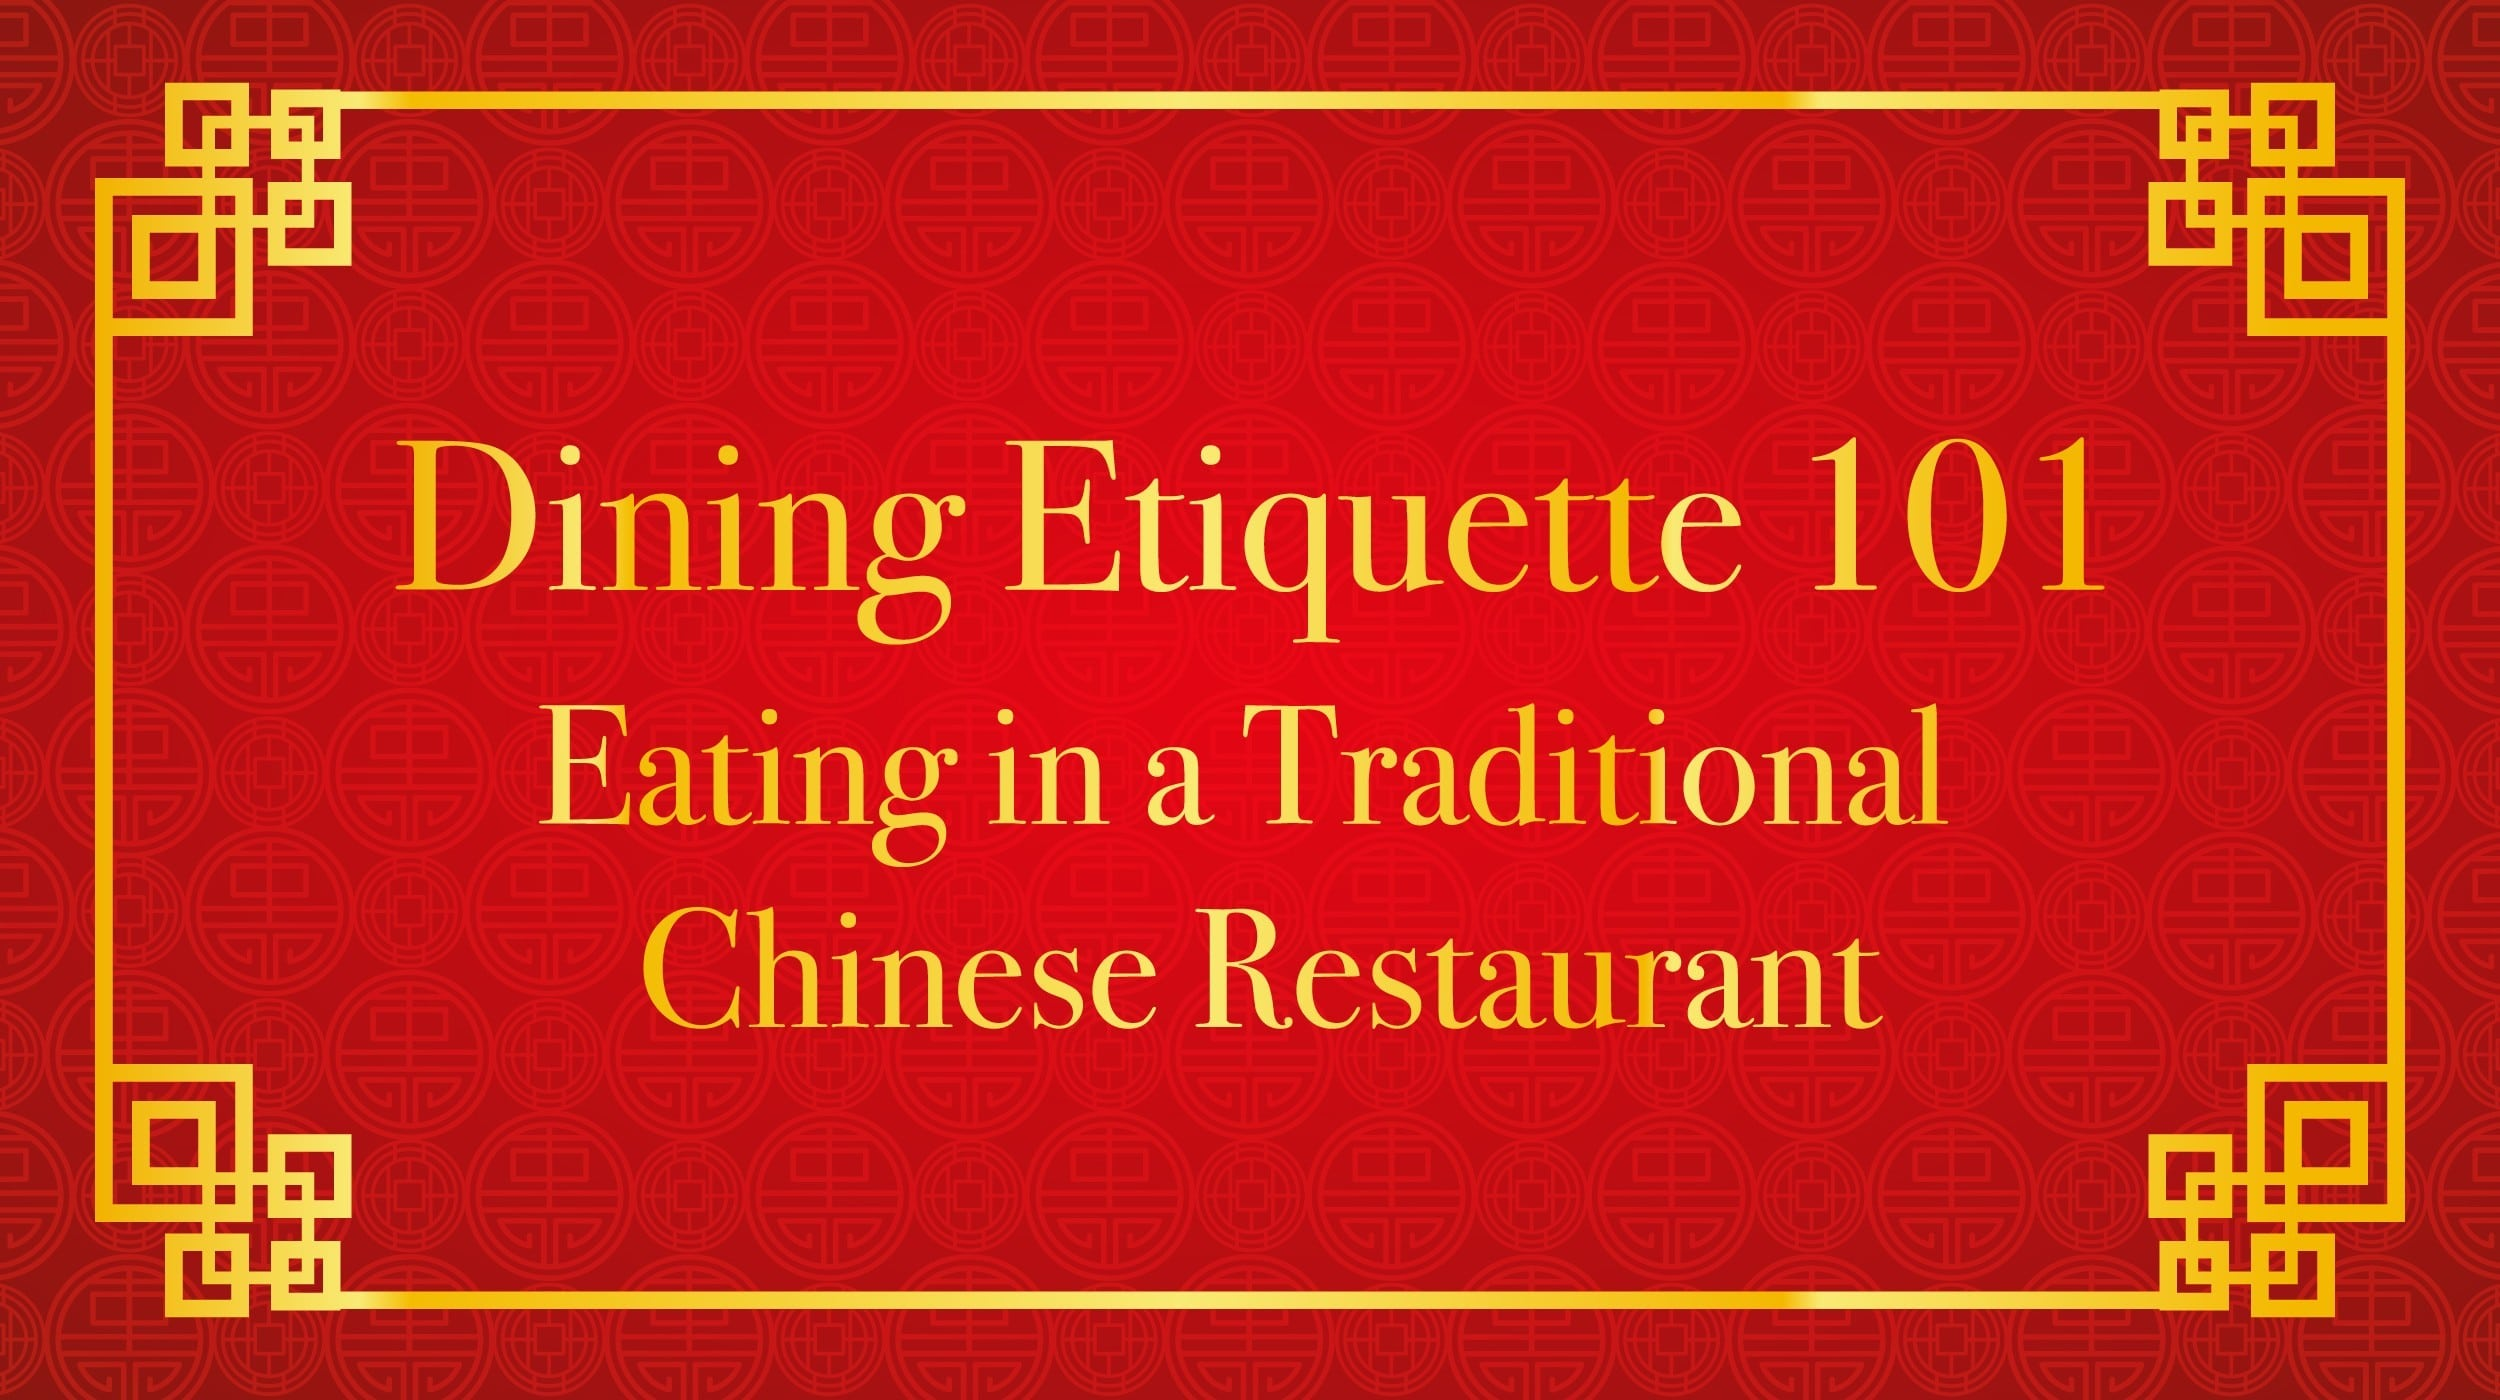 Eating in a Traditional Chinese Restaurant